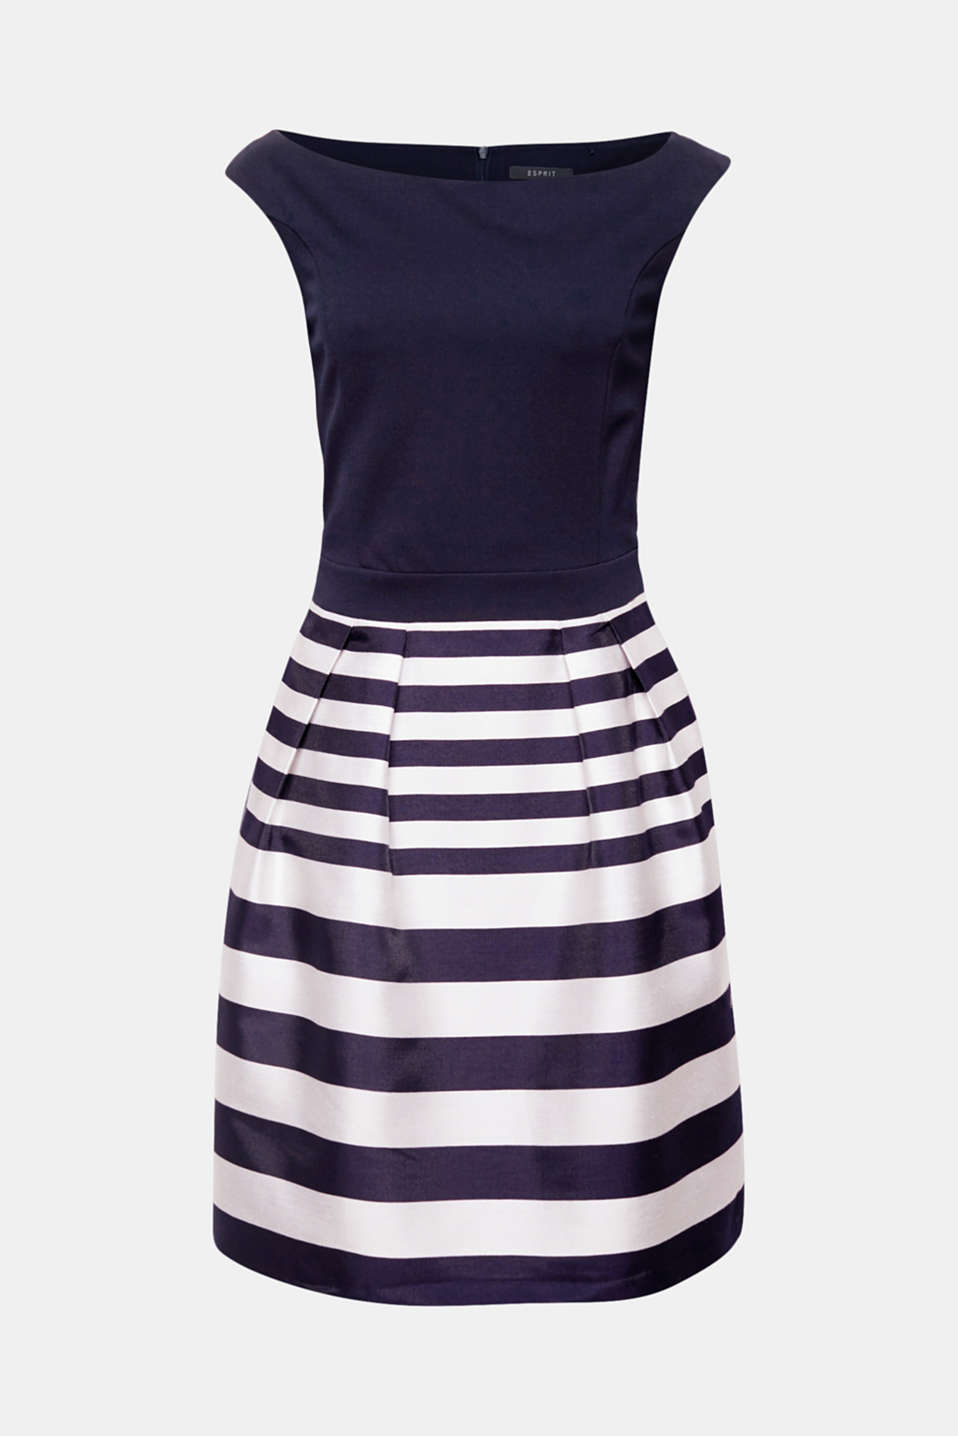 Fits perfectly, is ultra comfortable and elegant at the same time: Dress with a figure-enhancing jersey top and a flared cloth skirt in a block stripe style!